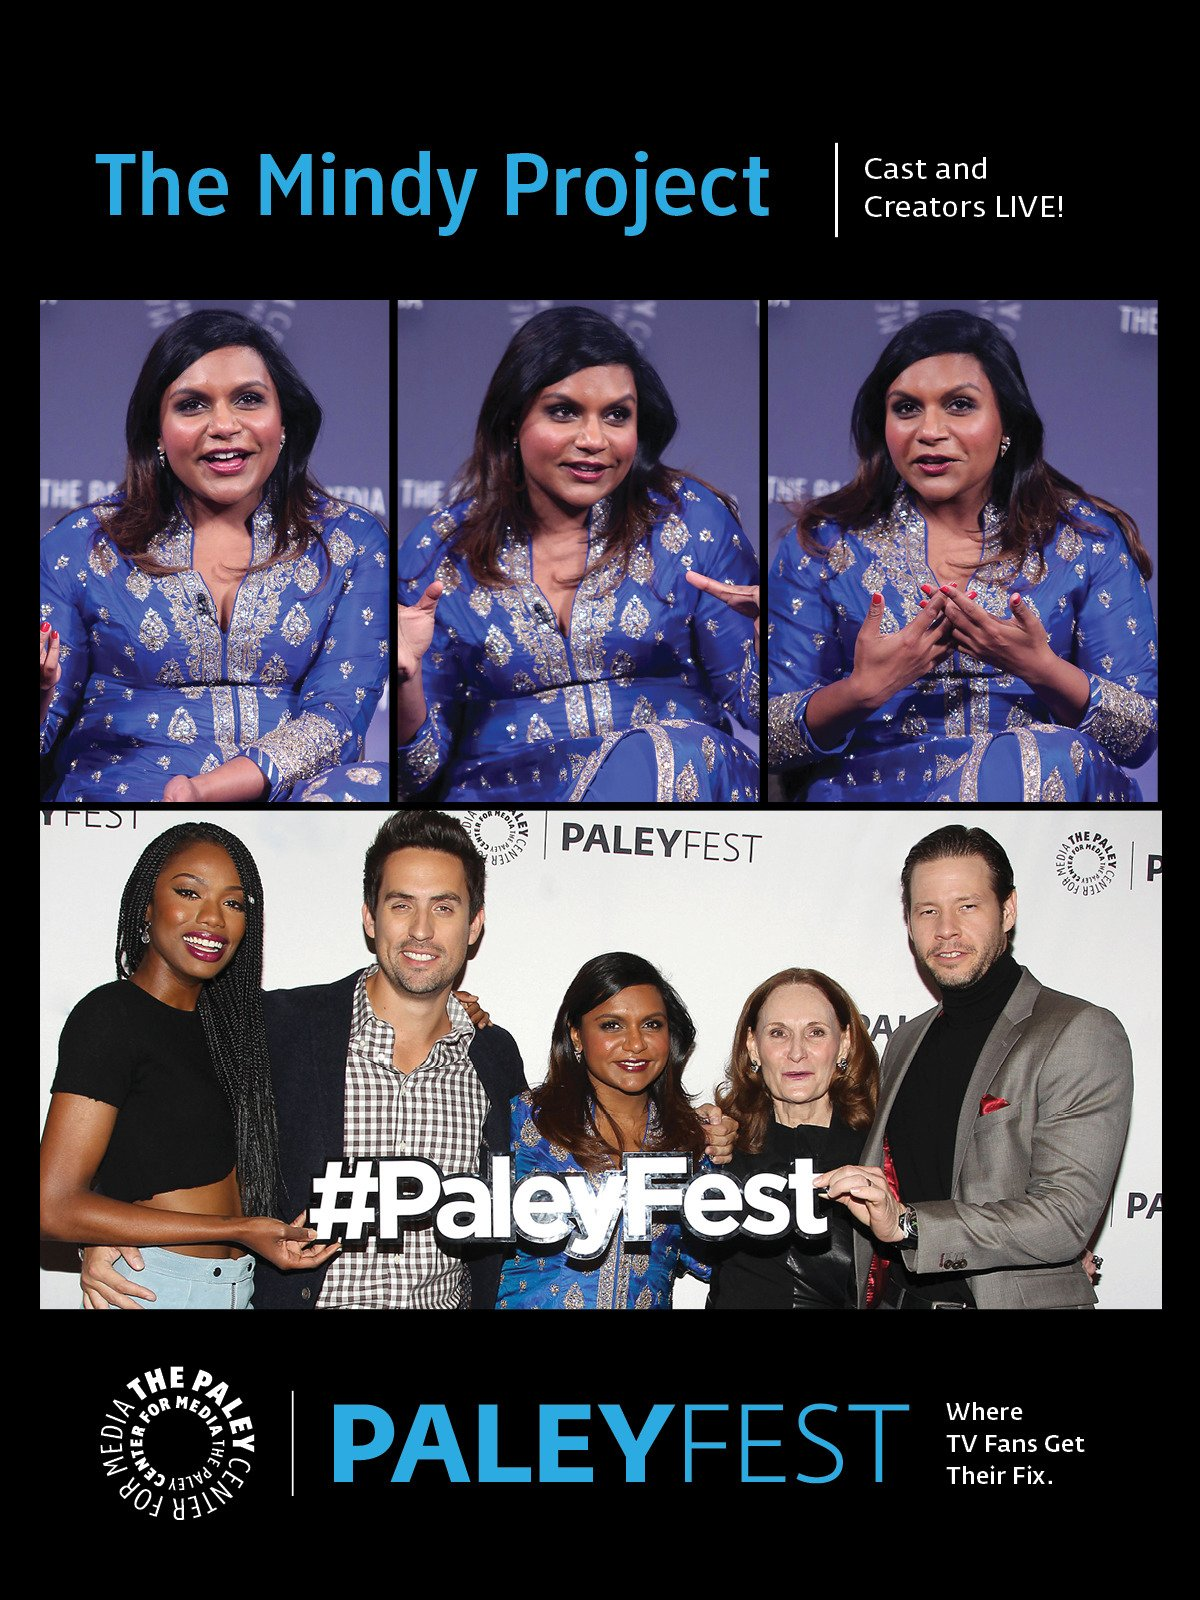 The Mindy Project: Cast and Creators Live at PaleyFest NY 2015